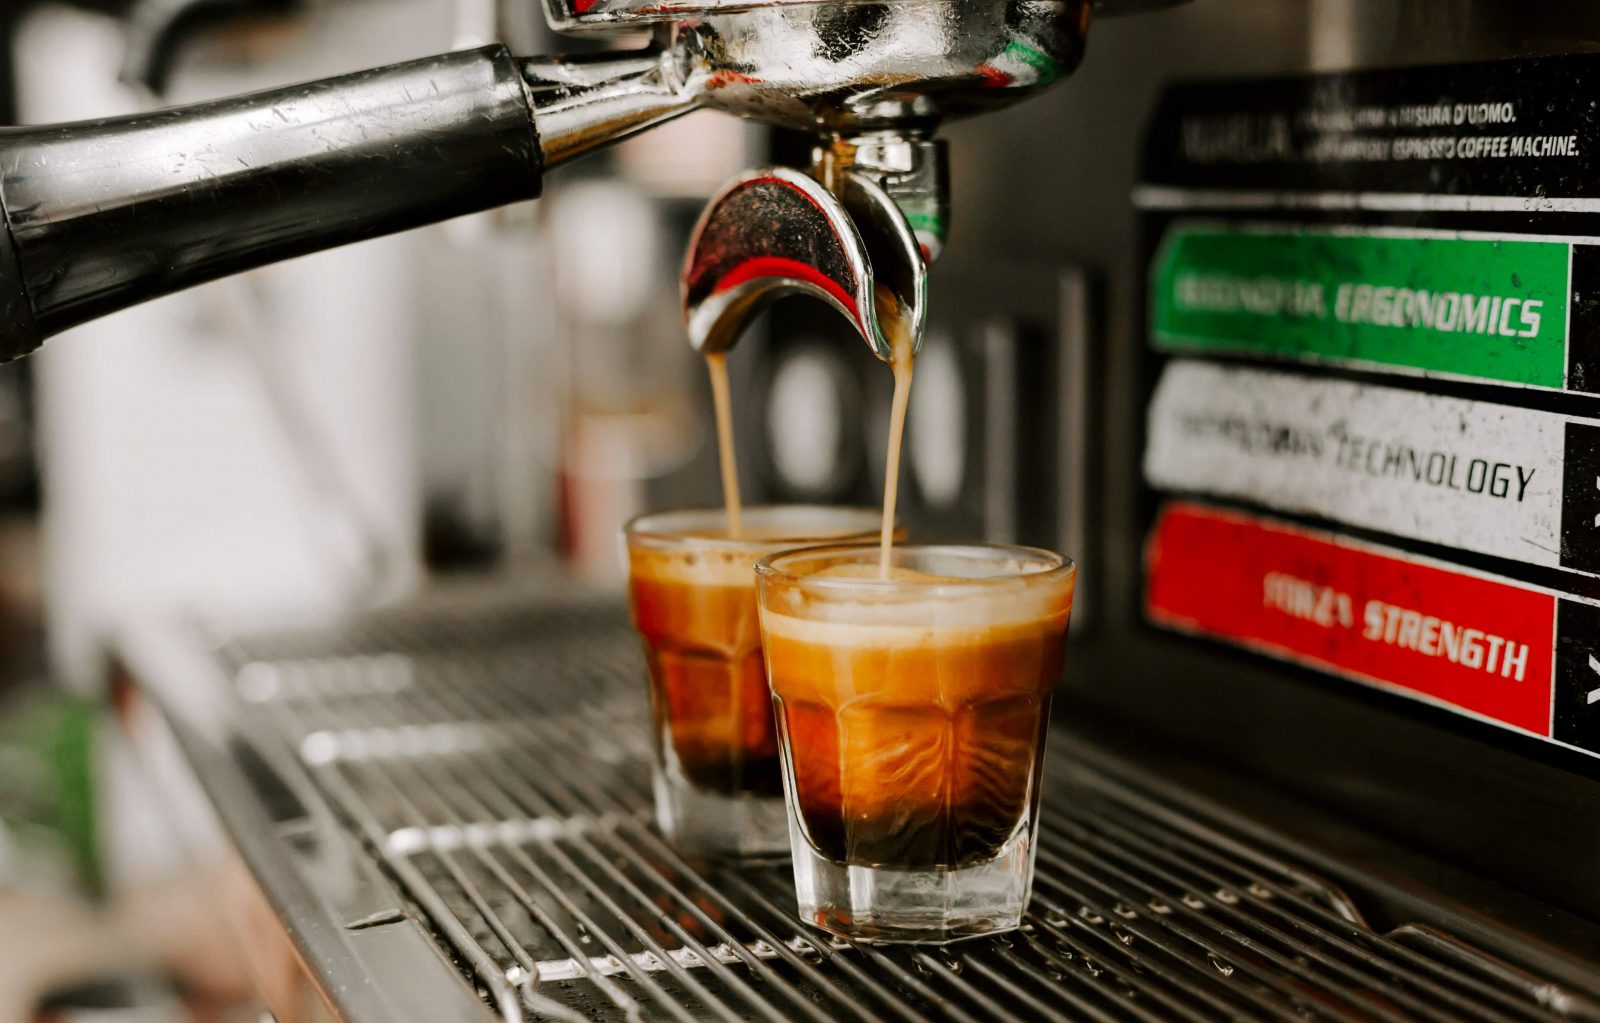 Espresso machine at Bradley's Gourmet Coffees and More